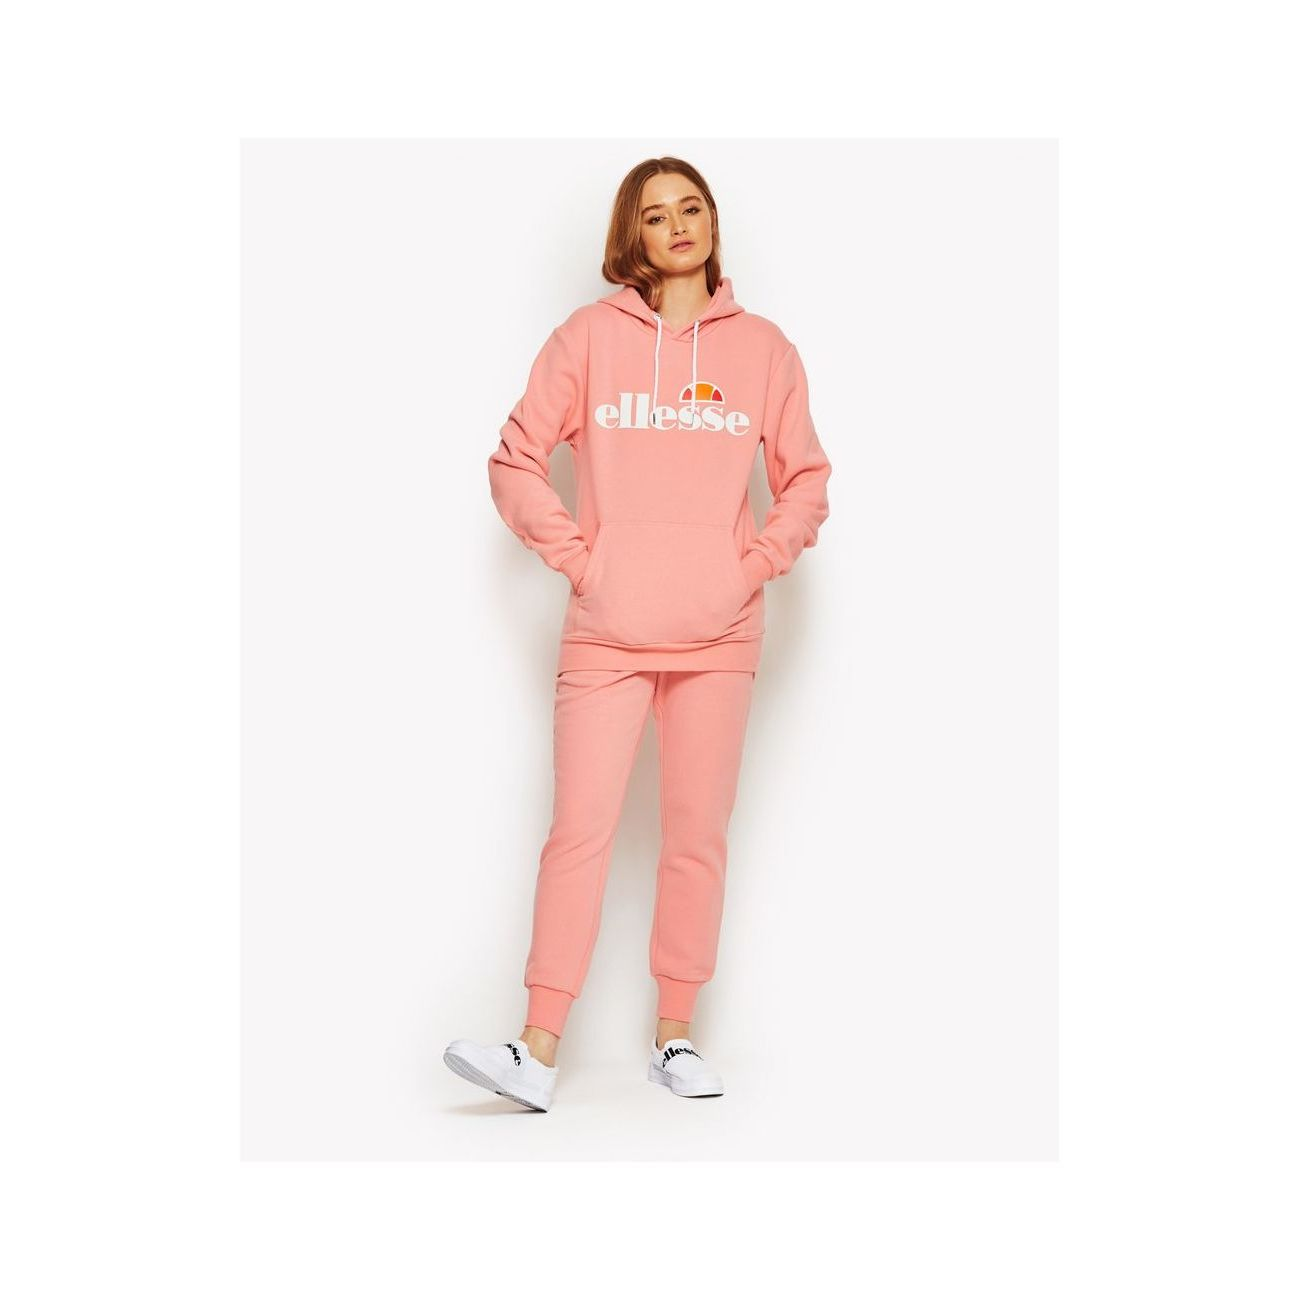 Mode Lifestyle femme ELLESSE Sweat capuche torices hoody collection heritage